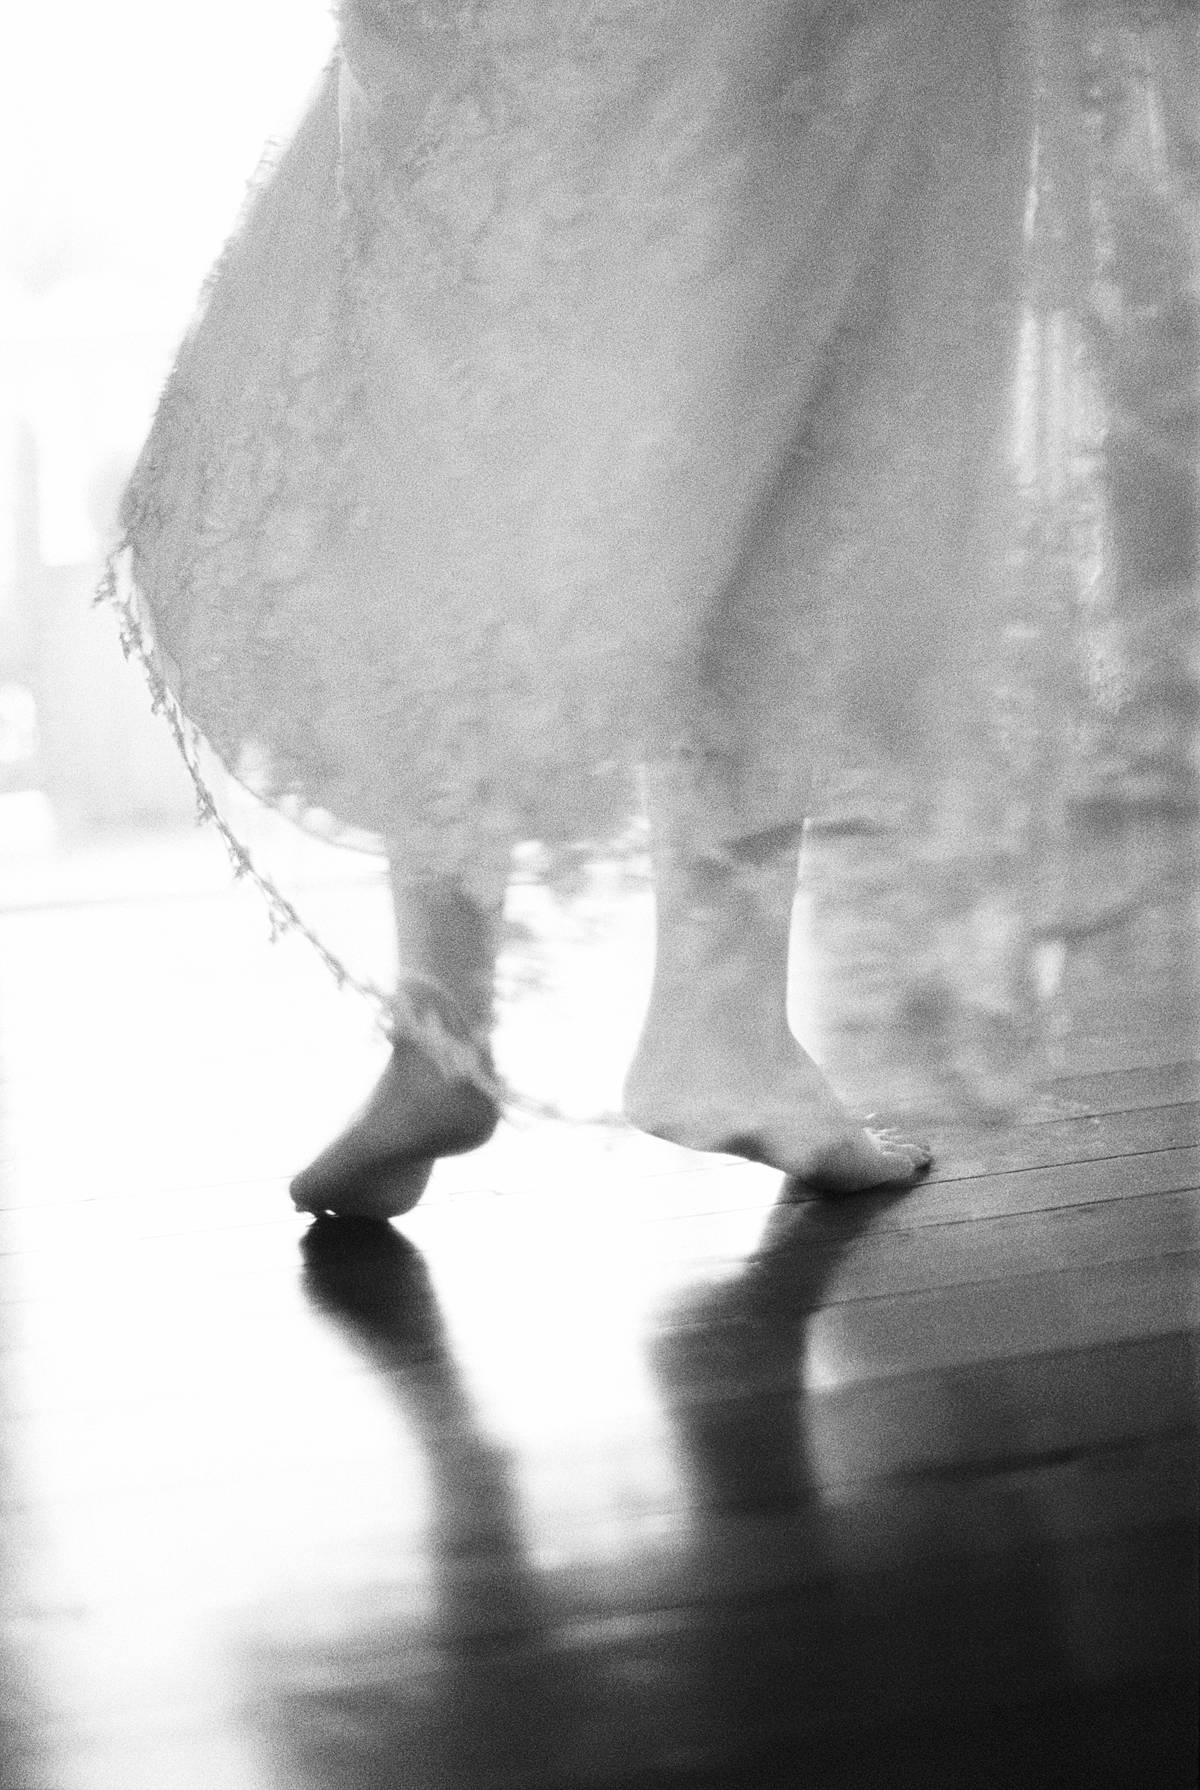 charleston bride in boudoir robe running up stairs at 86 cannon wedding venue dancing barefoot on black and white film